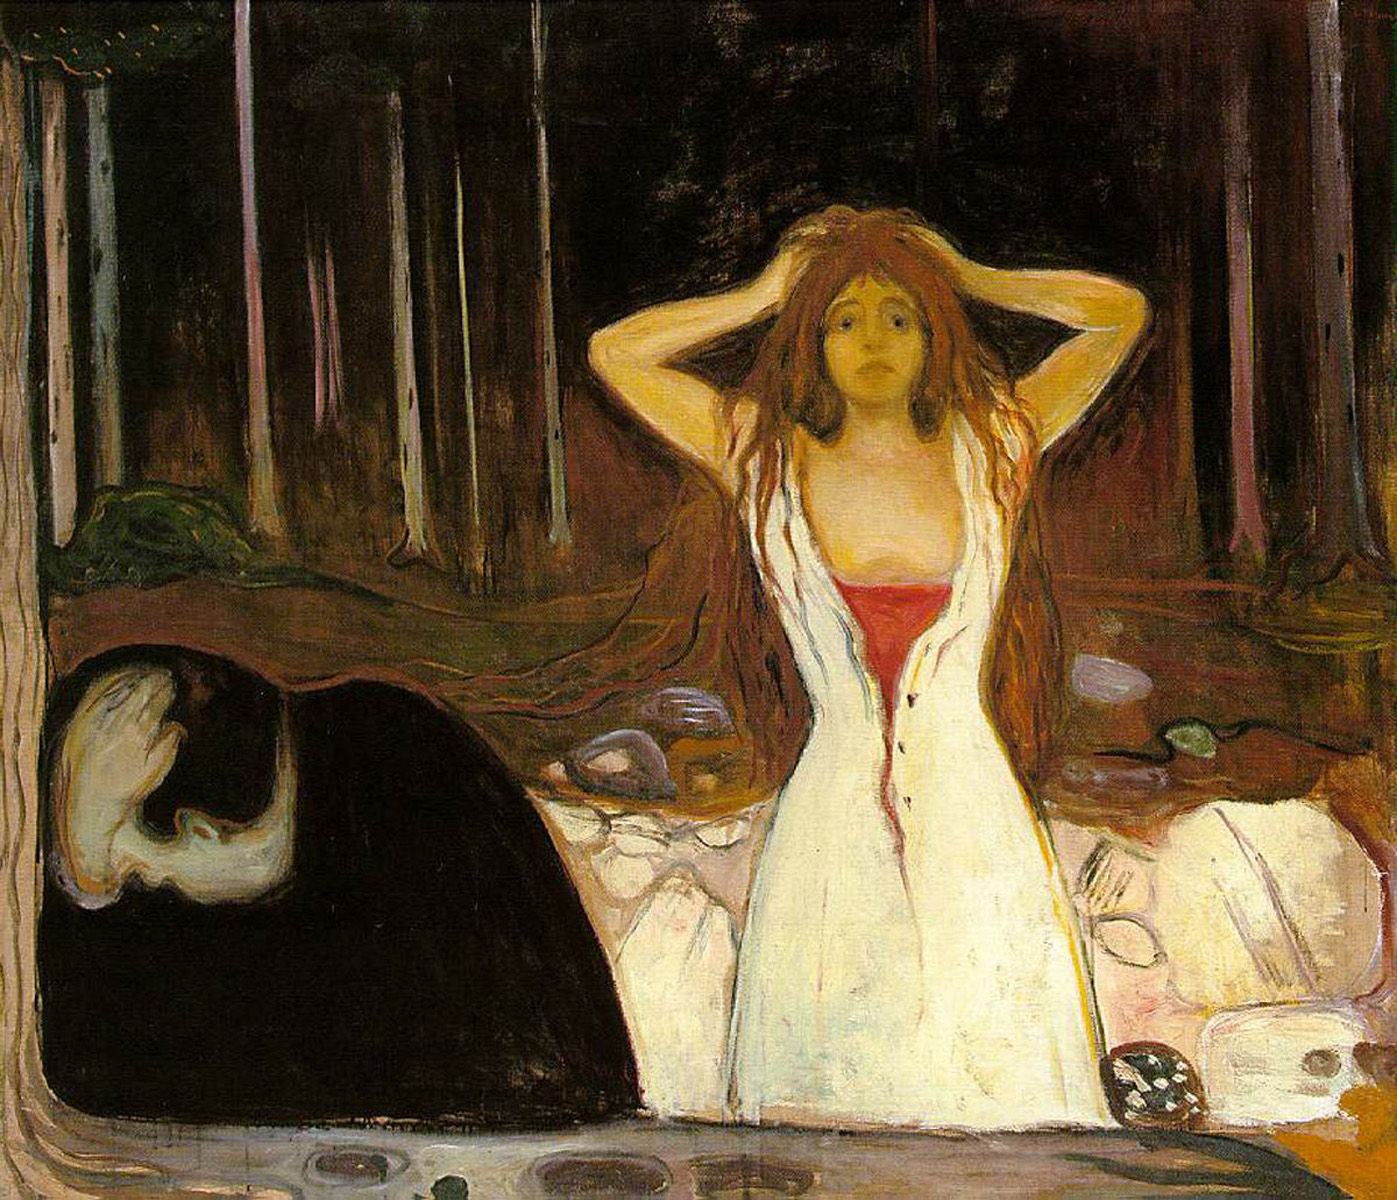 munch-ashes-1894